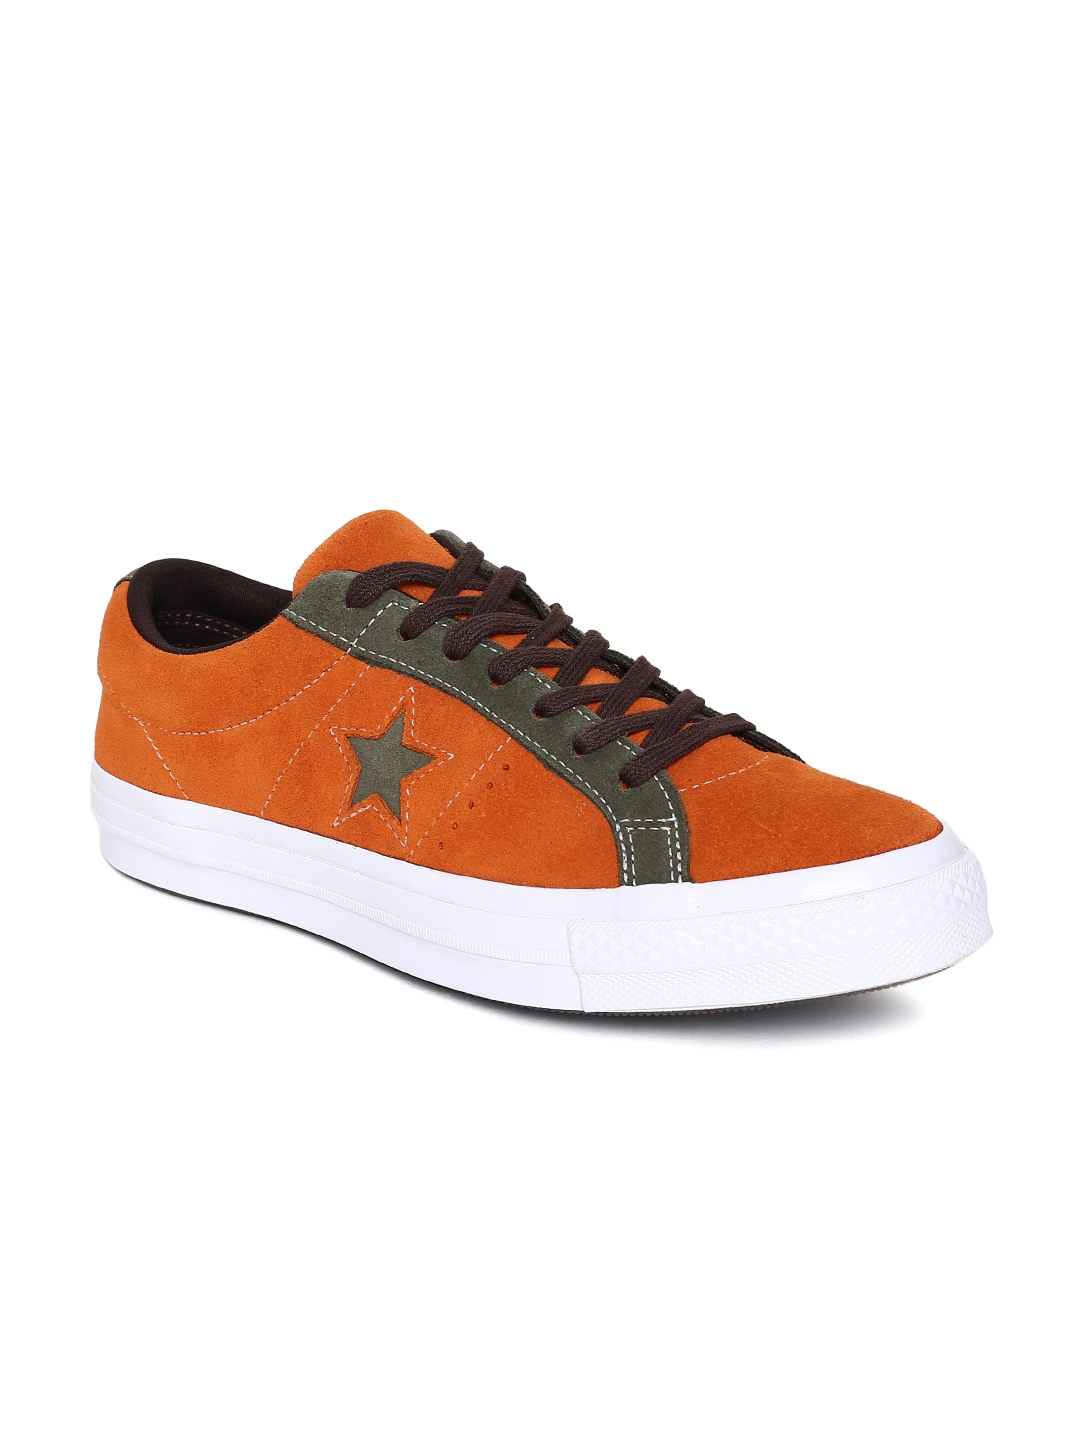 ... good converse shoes buy converse canvas shoes sneakers online fc4eb  7dc87 ... fed156550